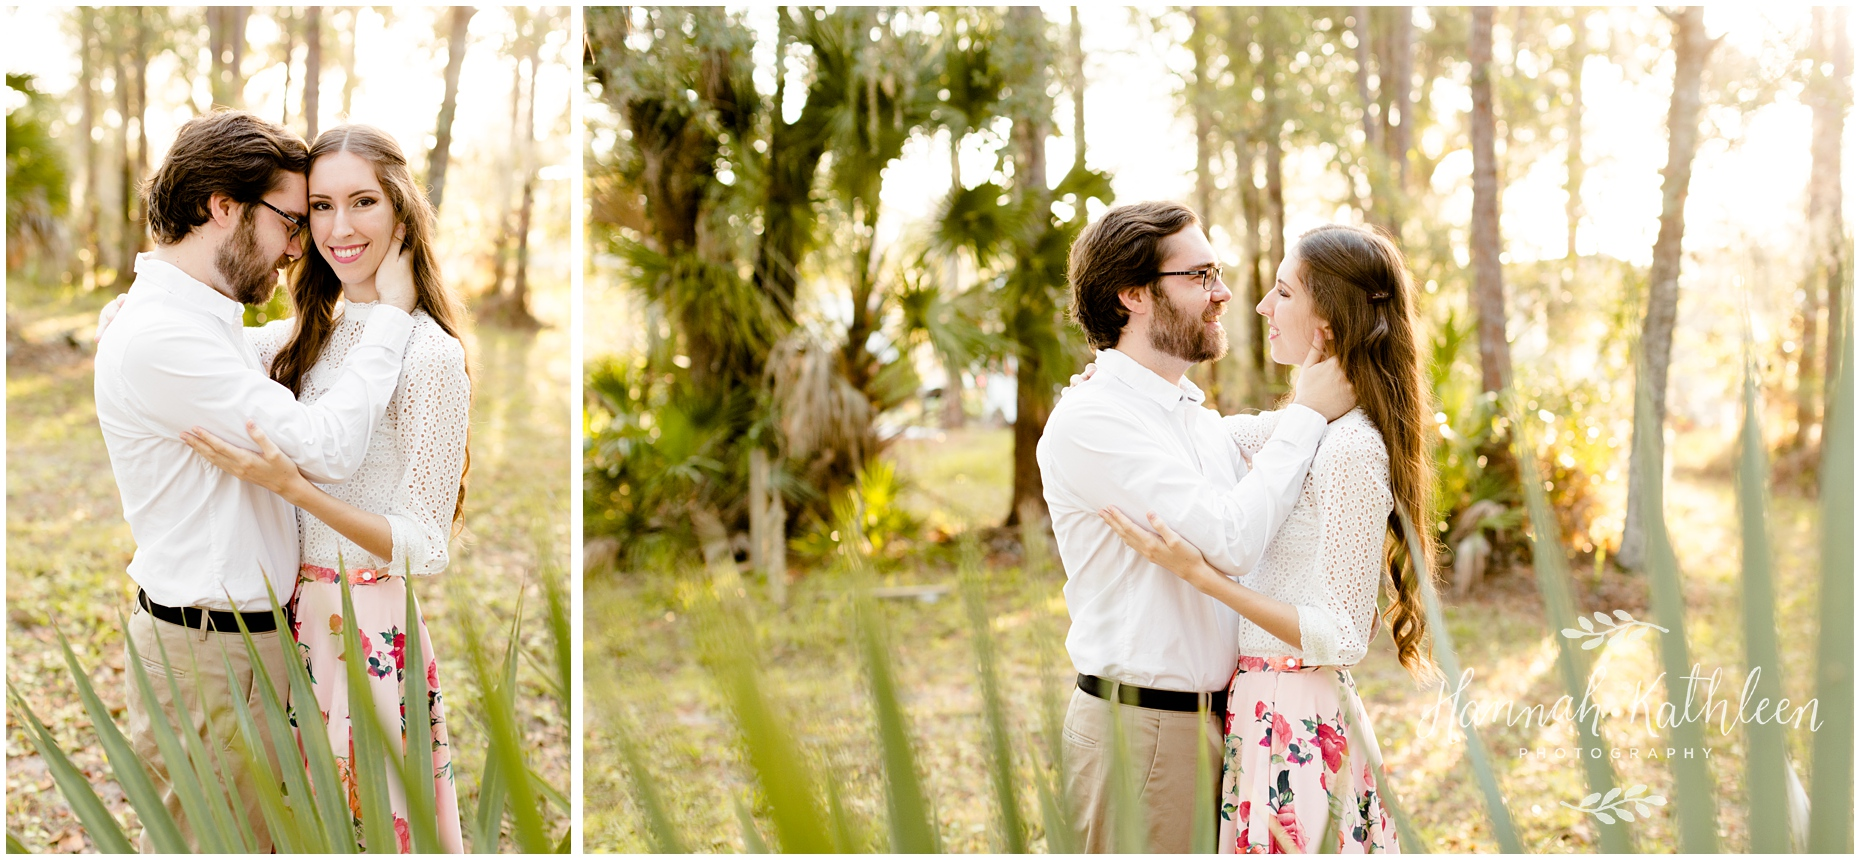 Warren_Ellie_Engagement_Photographer_Orlando_Florida_Kissimee